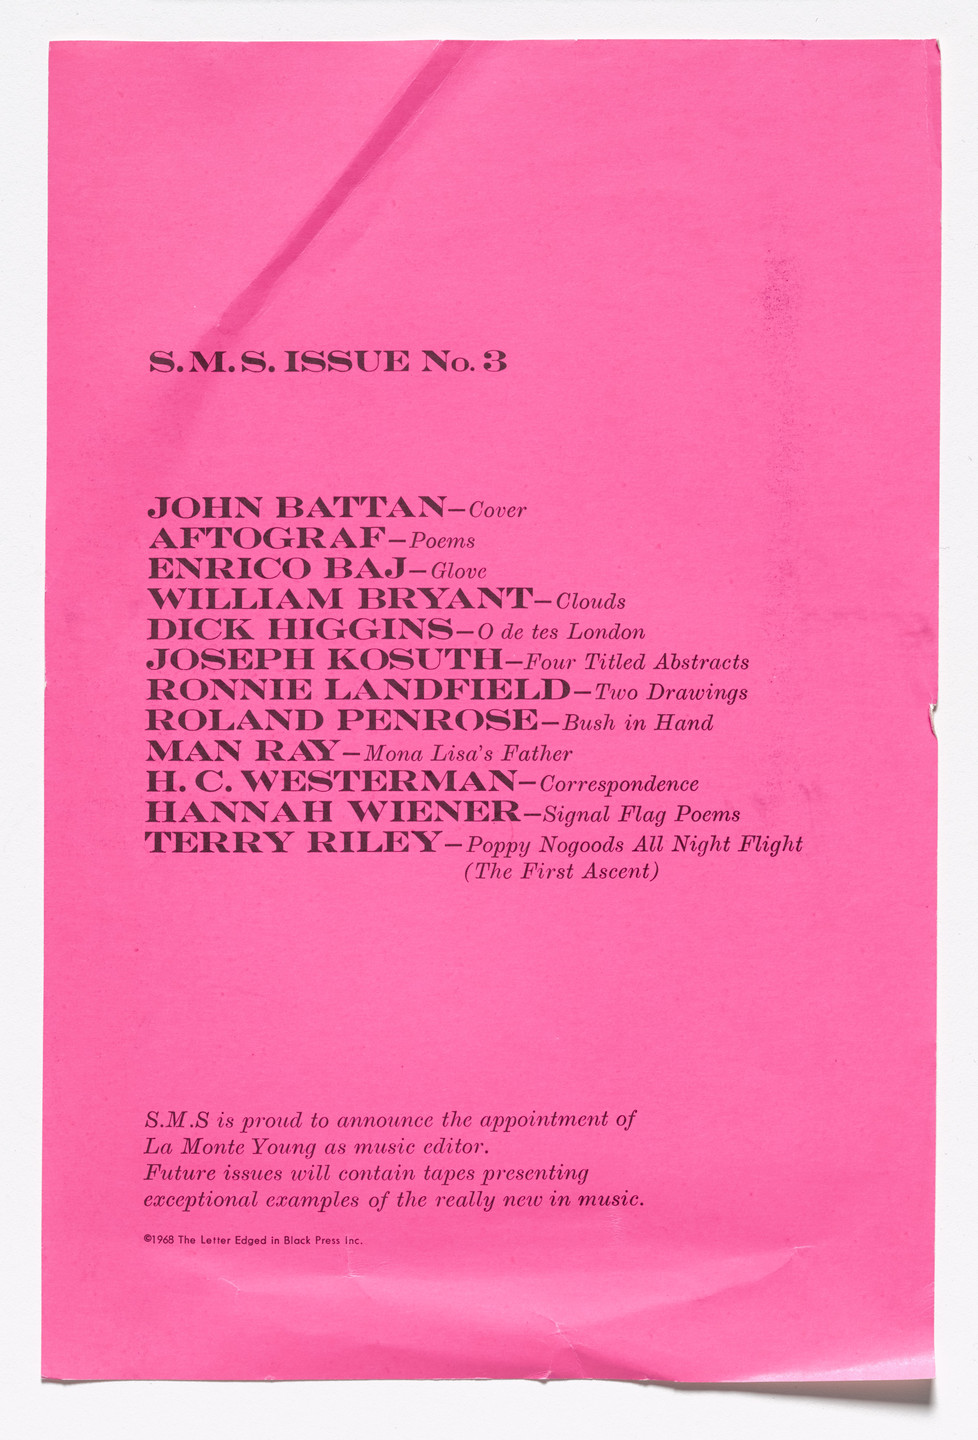 Terry Riley, Hannah Weiner, H. C. Westermann, Roland Renrose, Ronnie Landfield, Joseph Kosuth, Dick Higgins, William Bryant, Enrico Baj, Aftograf, John Battan, Various Artists. S.M.S. 3. 1968